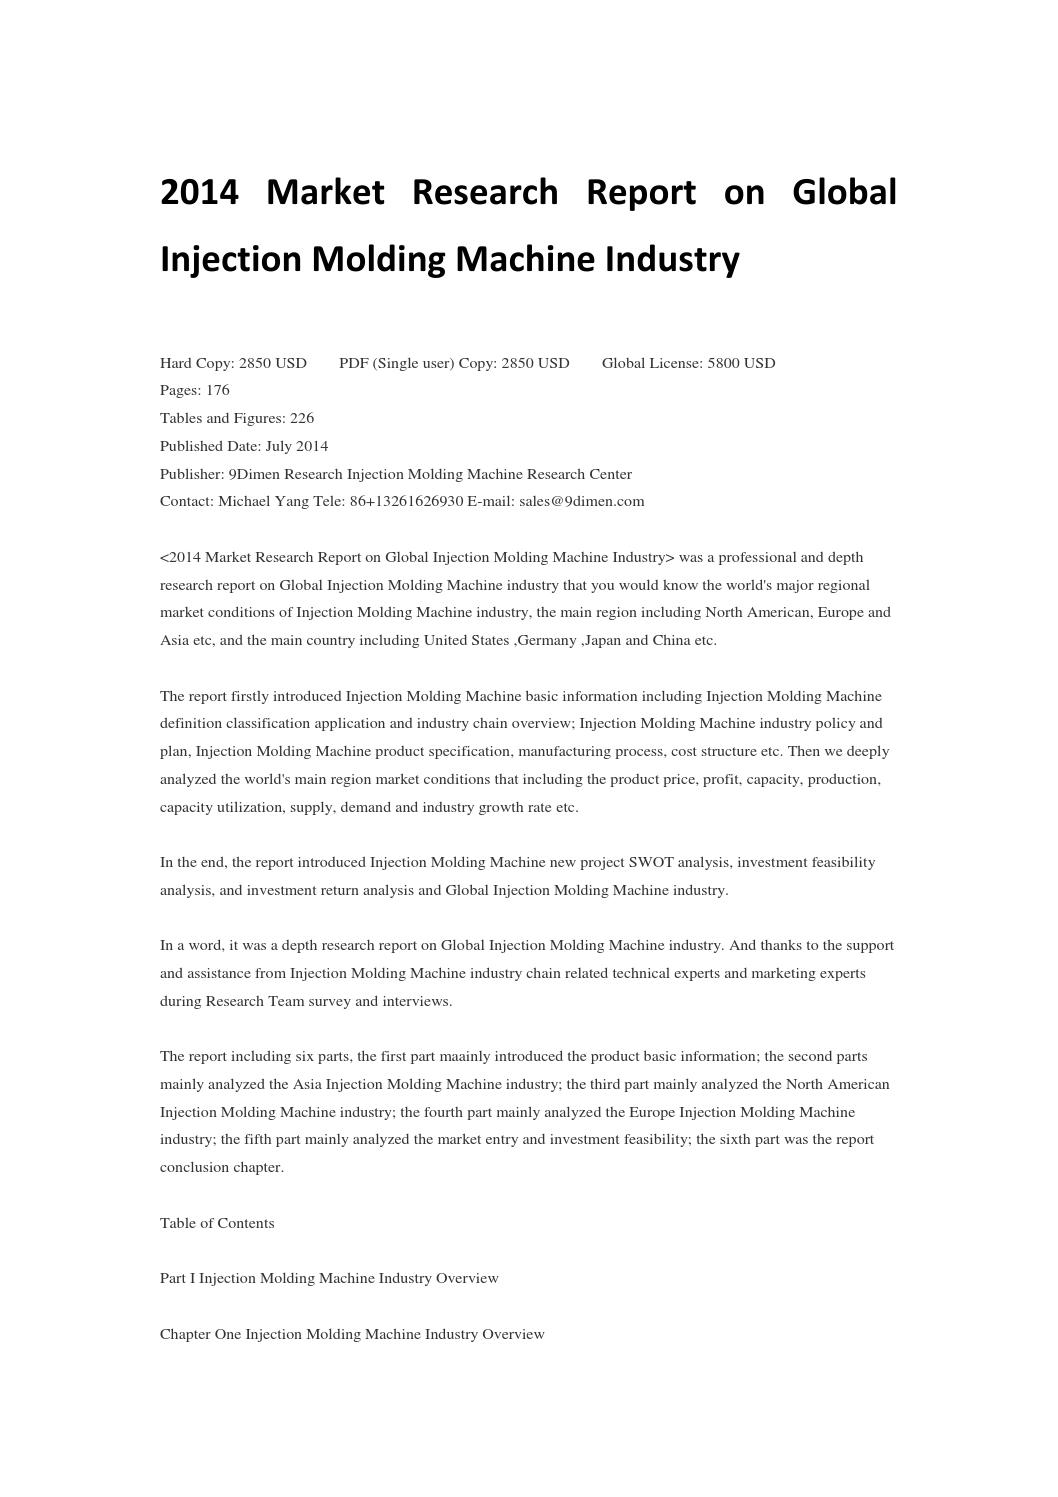 2014 market research report on global injection molding